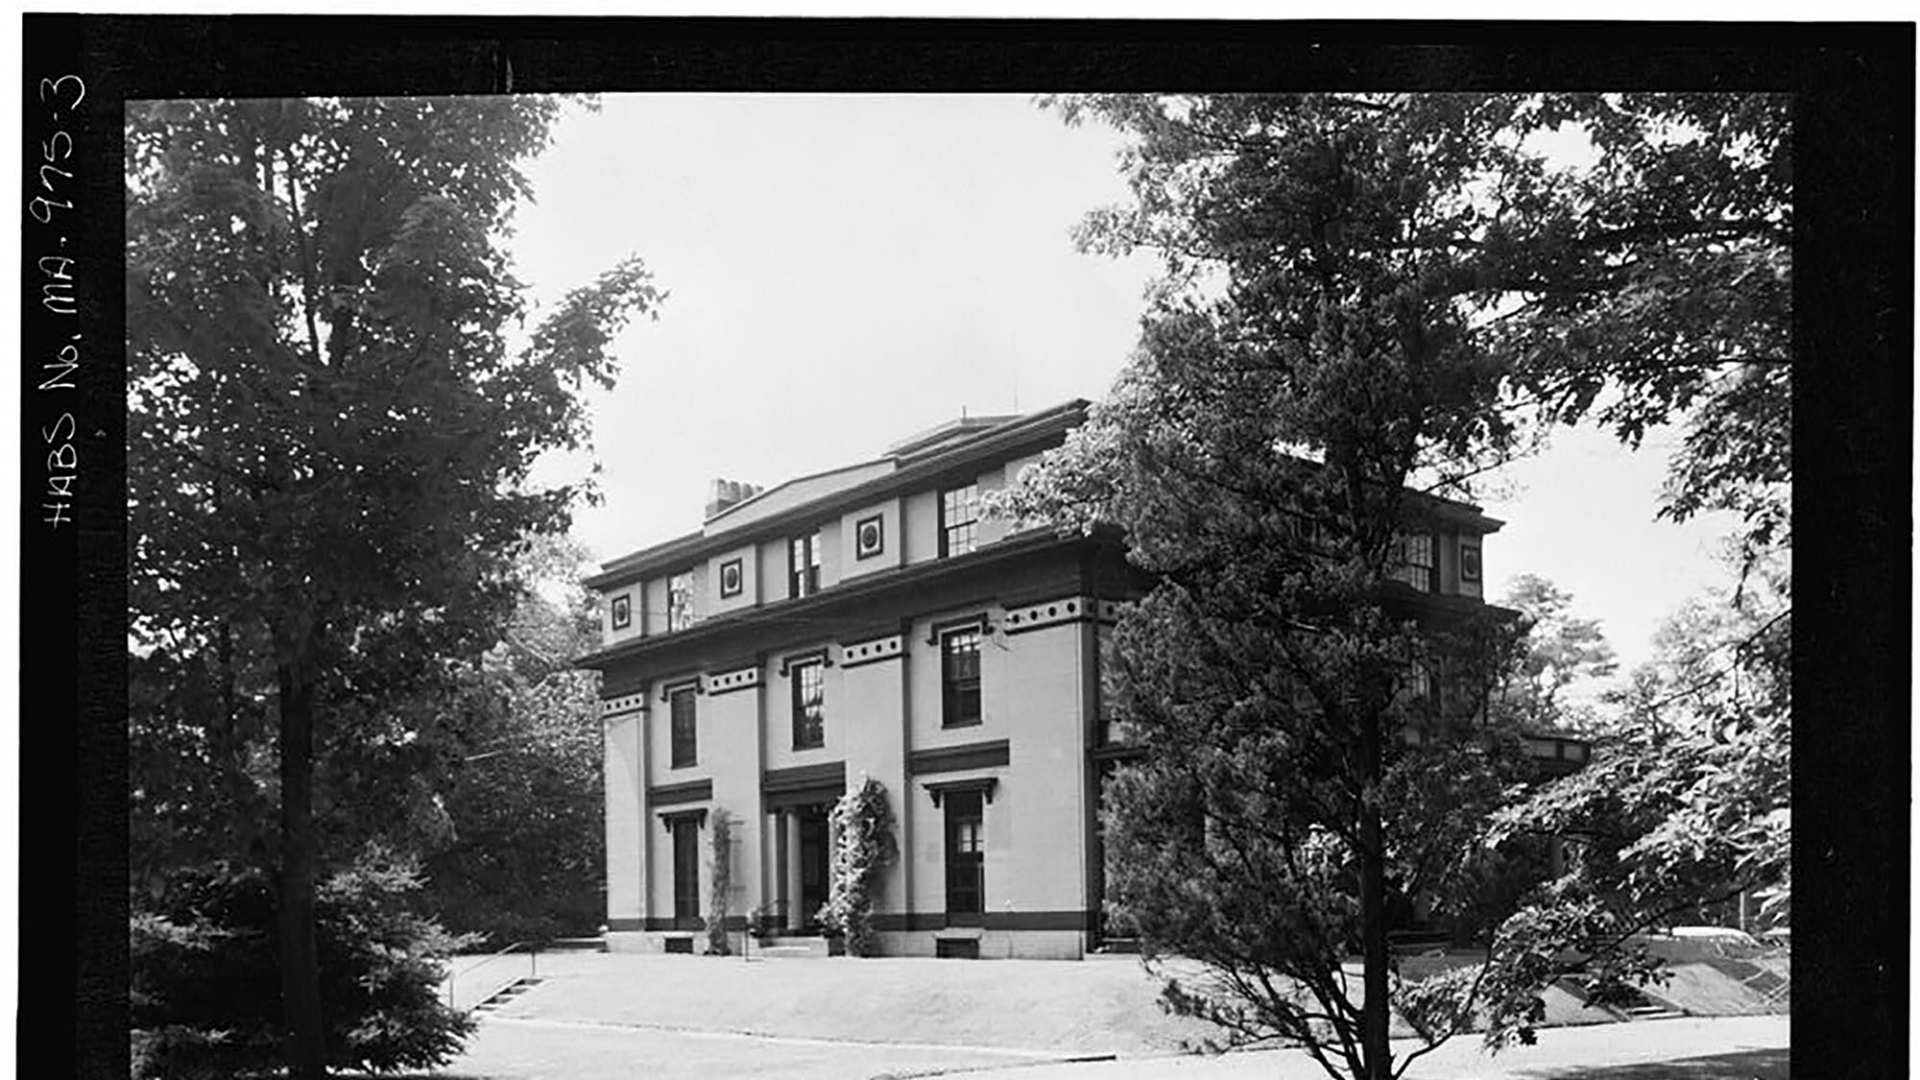 Captain Robert Bennett Forbes House in Milton, MA. (Credit: The Library of Congress)